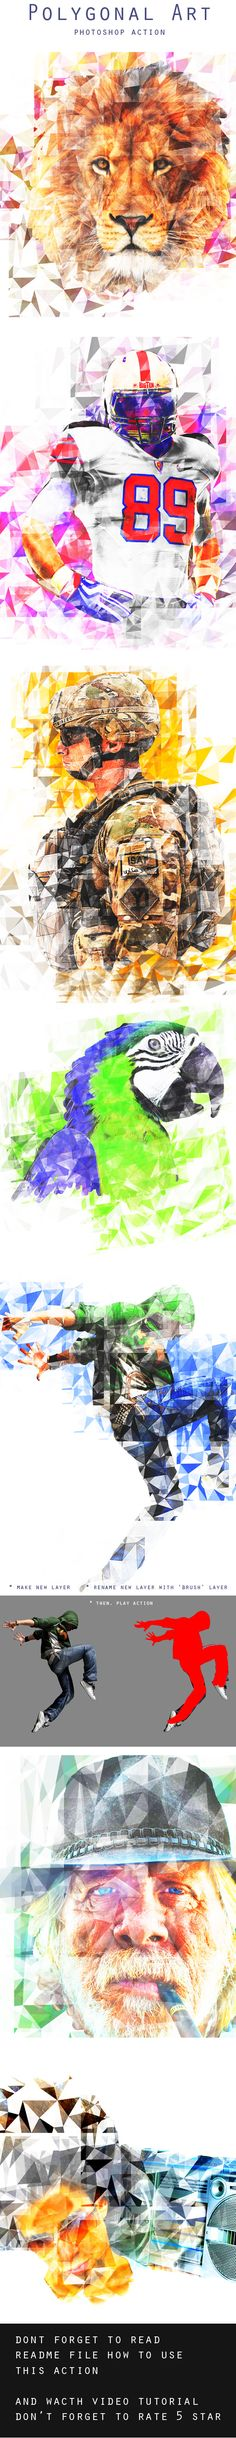 Polygonal Art Photoshop Action #photoeffect Download…